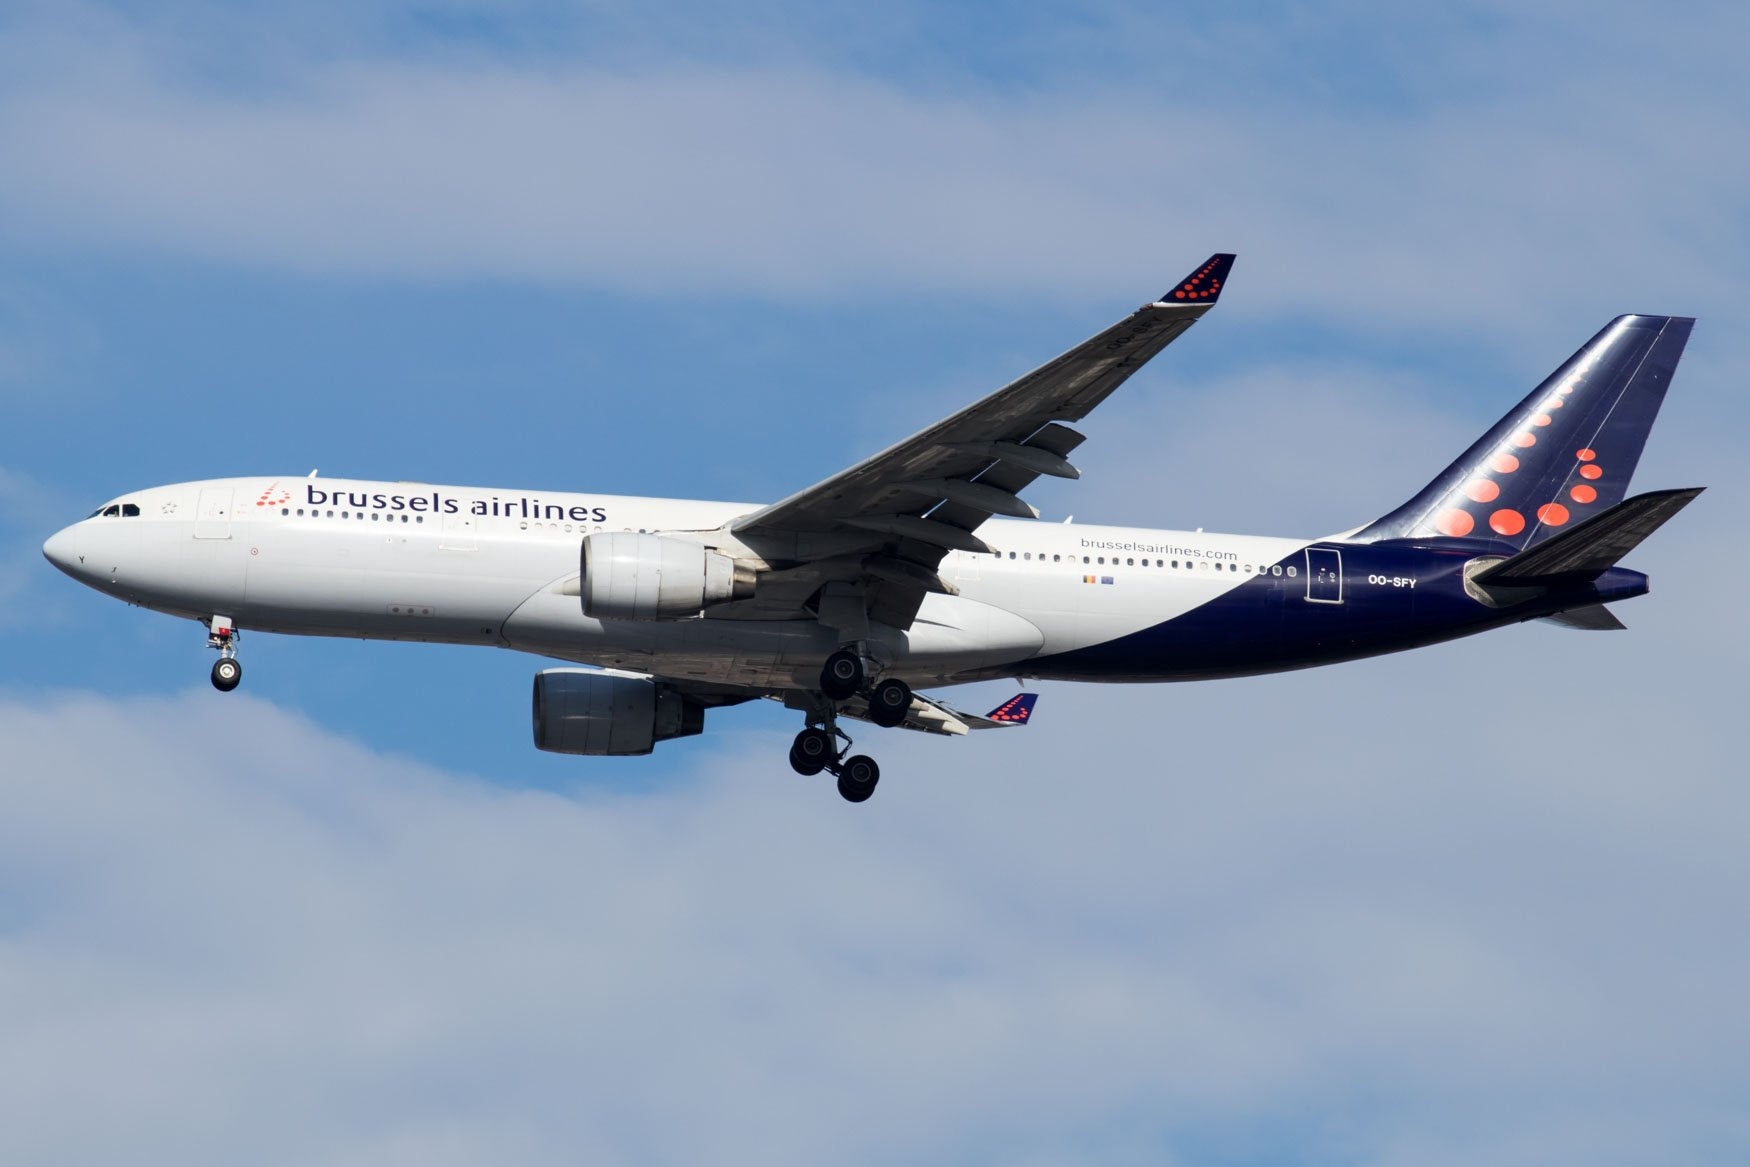 Brussels Airlines A330 Landing at JFK